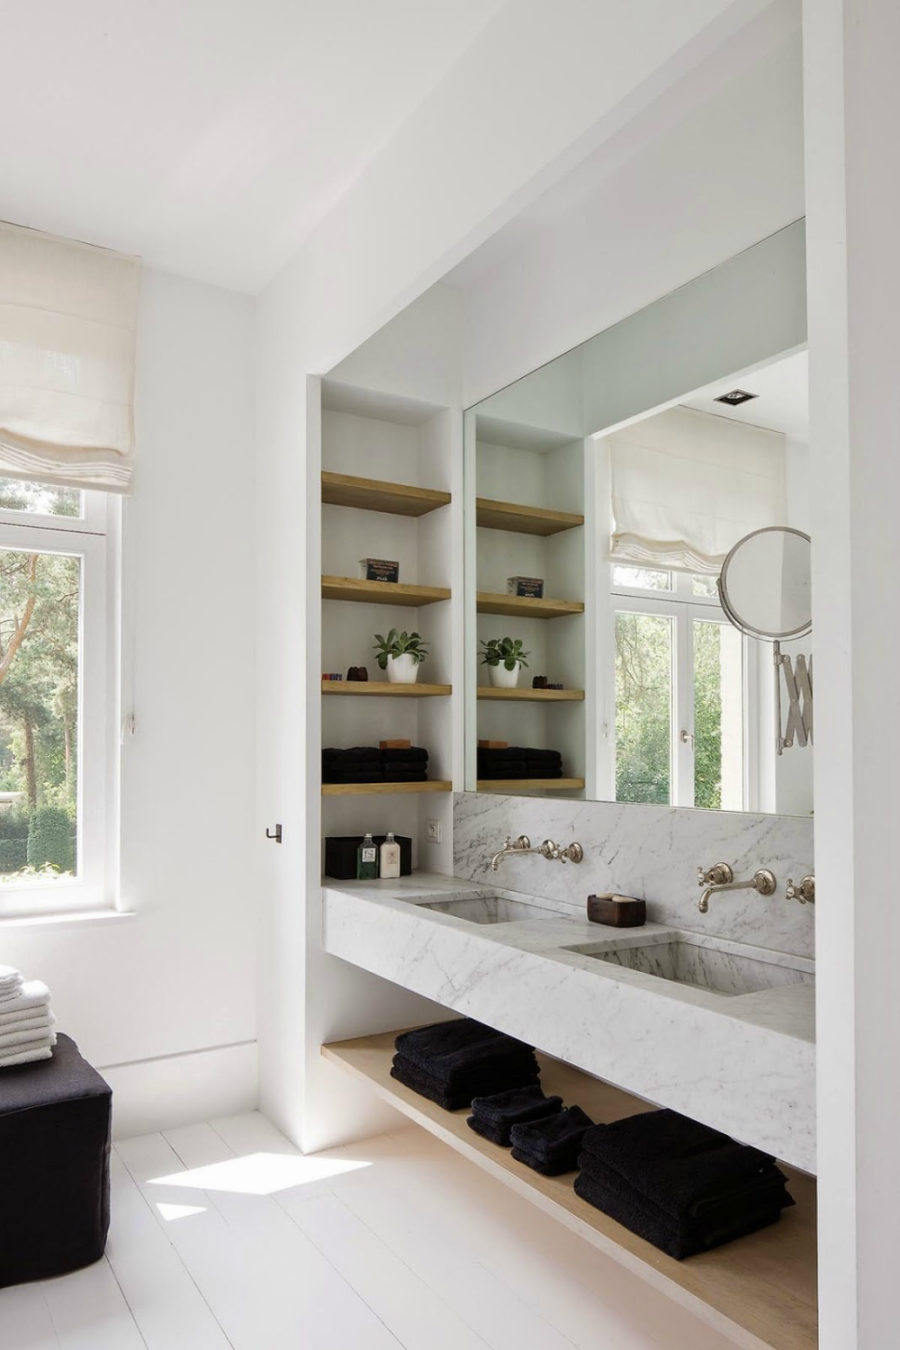 minimalist bathroom with a niche with storage shelves and a mirror